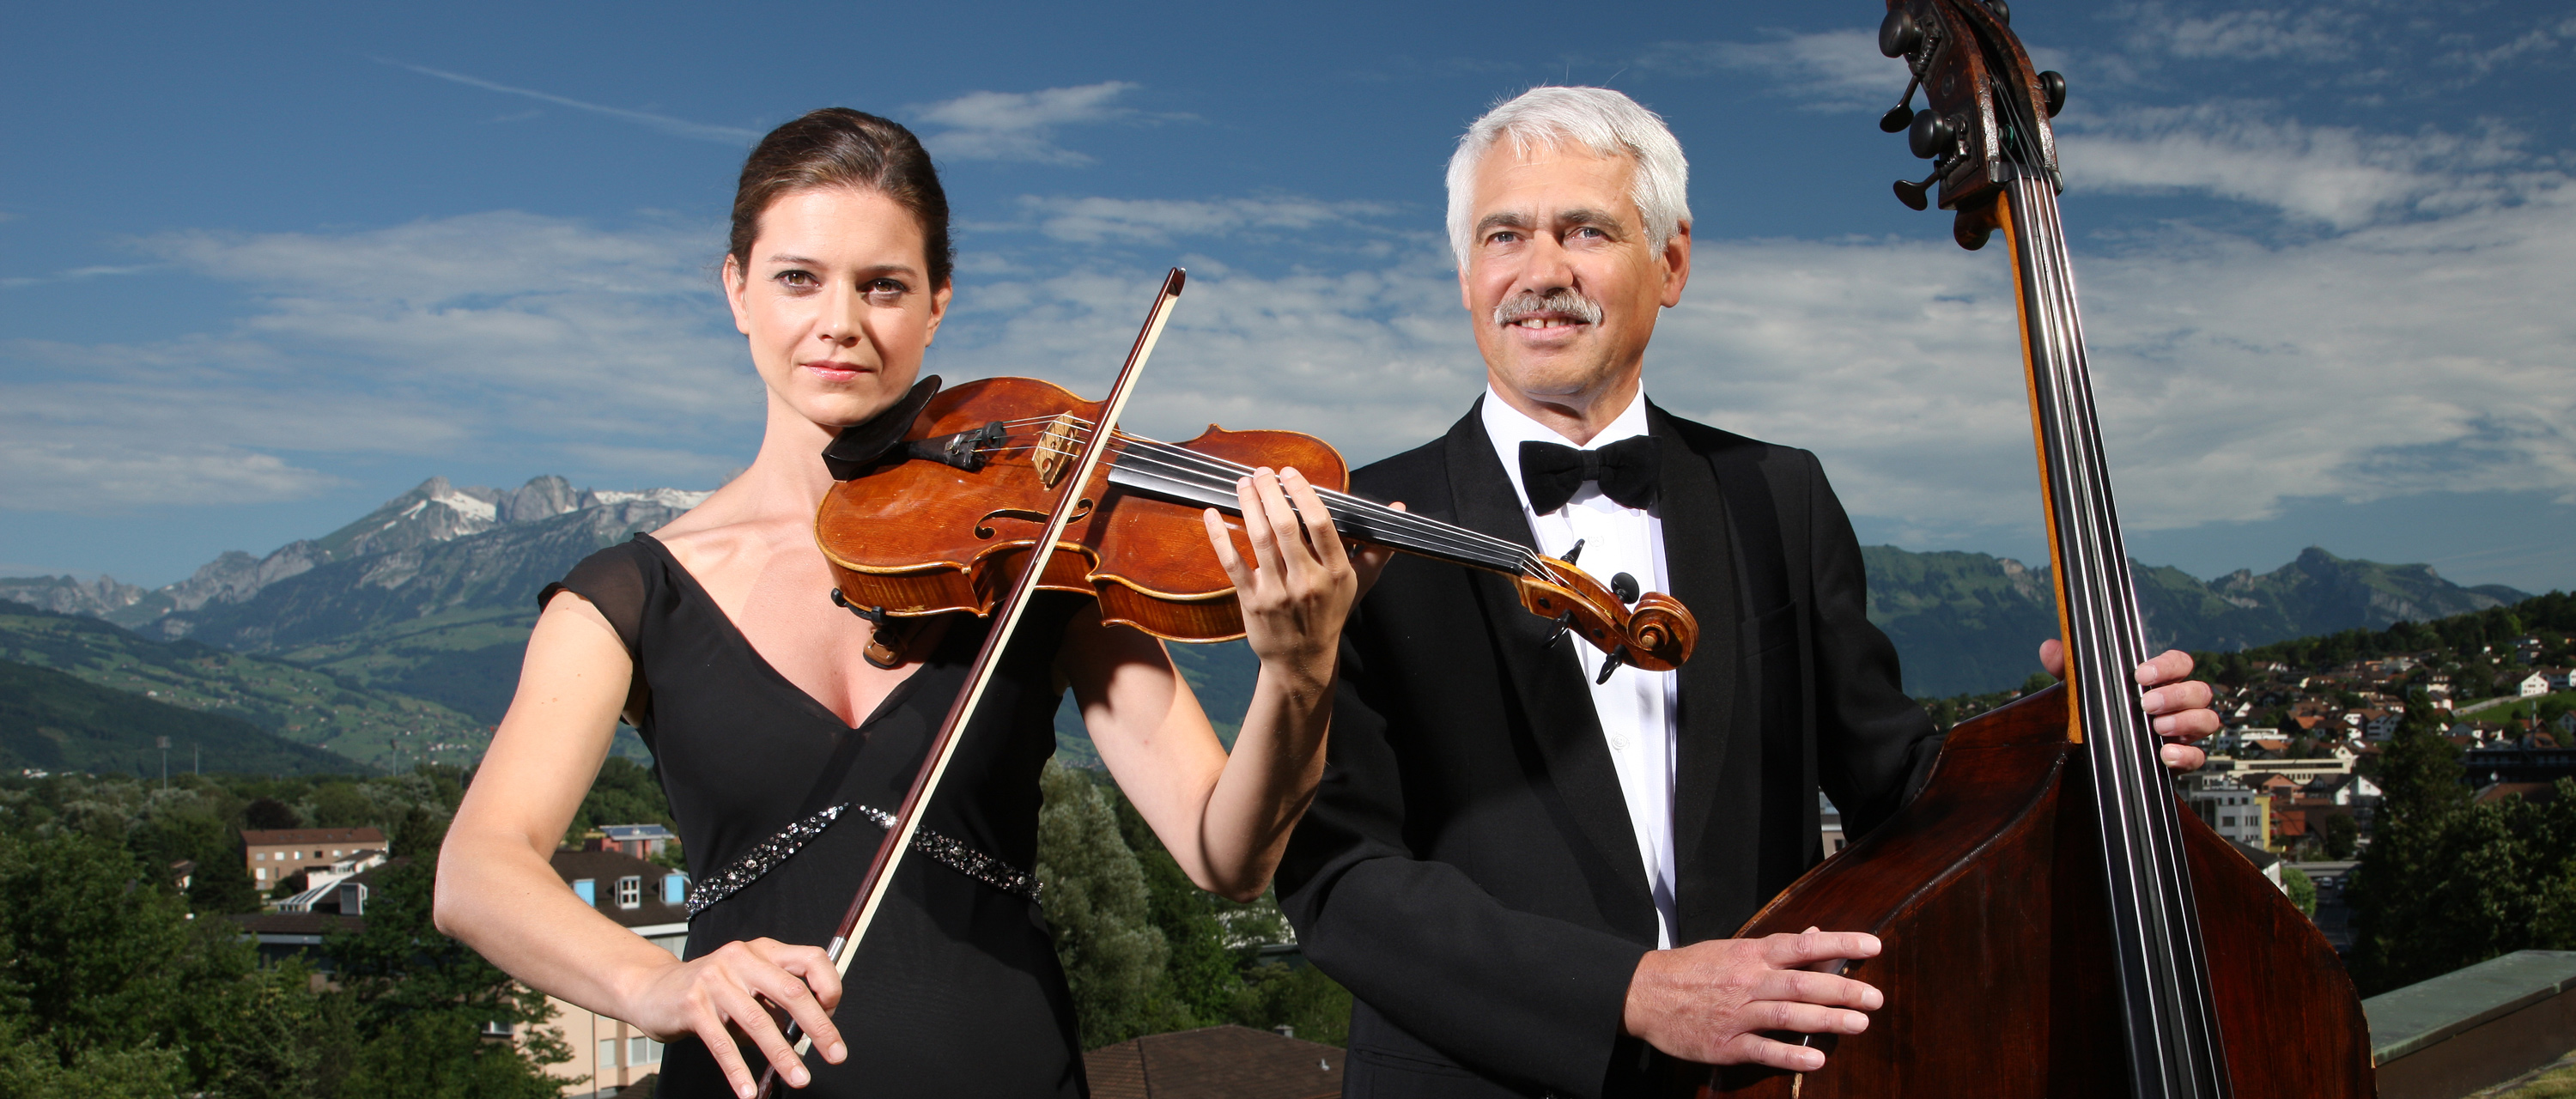 Woman with violin and man with chello